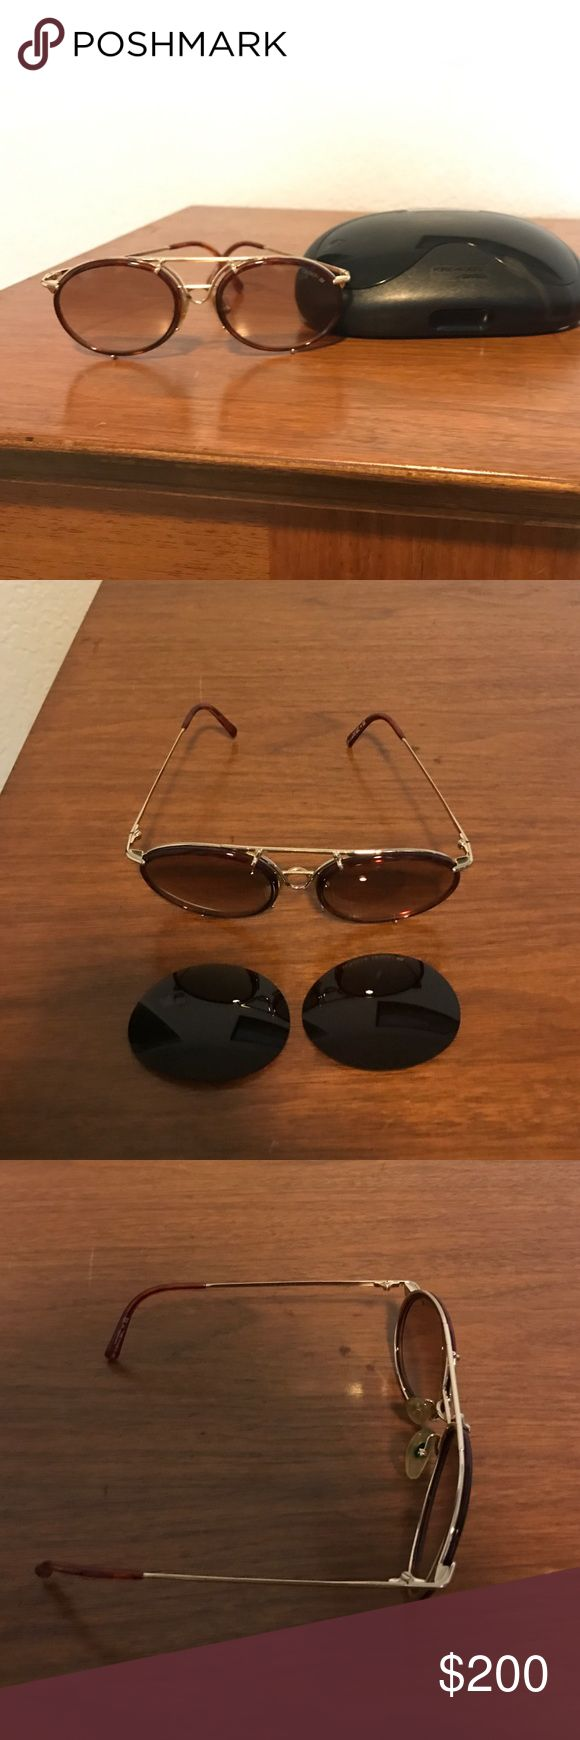 Carreras sunglasses model 5623-small Porsche design carrera sunglasses! LIKE NEW! Comes with case and darker fill replacements lenses as well. Chic vintage look! Super funky and fun! Carrera Accessories Sunglasses